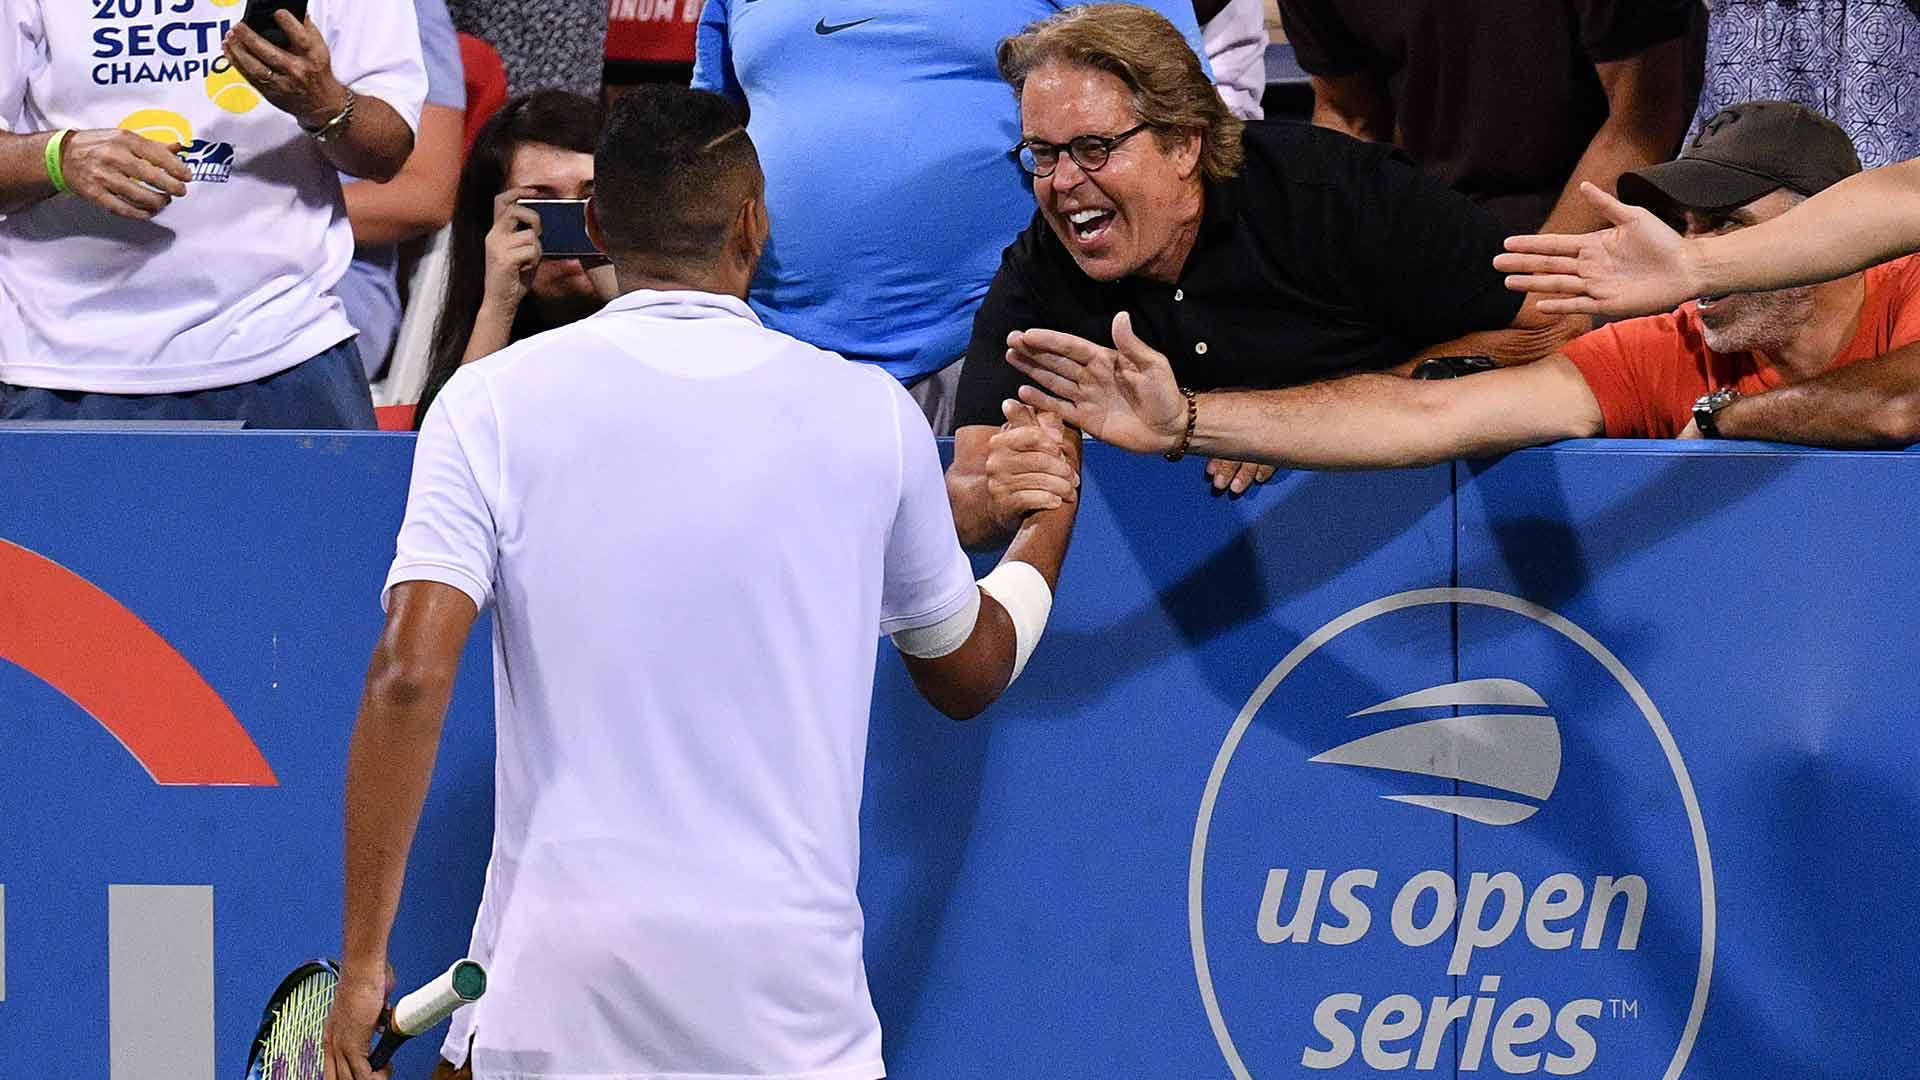 Nick Kyrgios celebrates reaching the Citi Open final in Washington, D.C., with his new friend/advisor